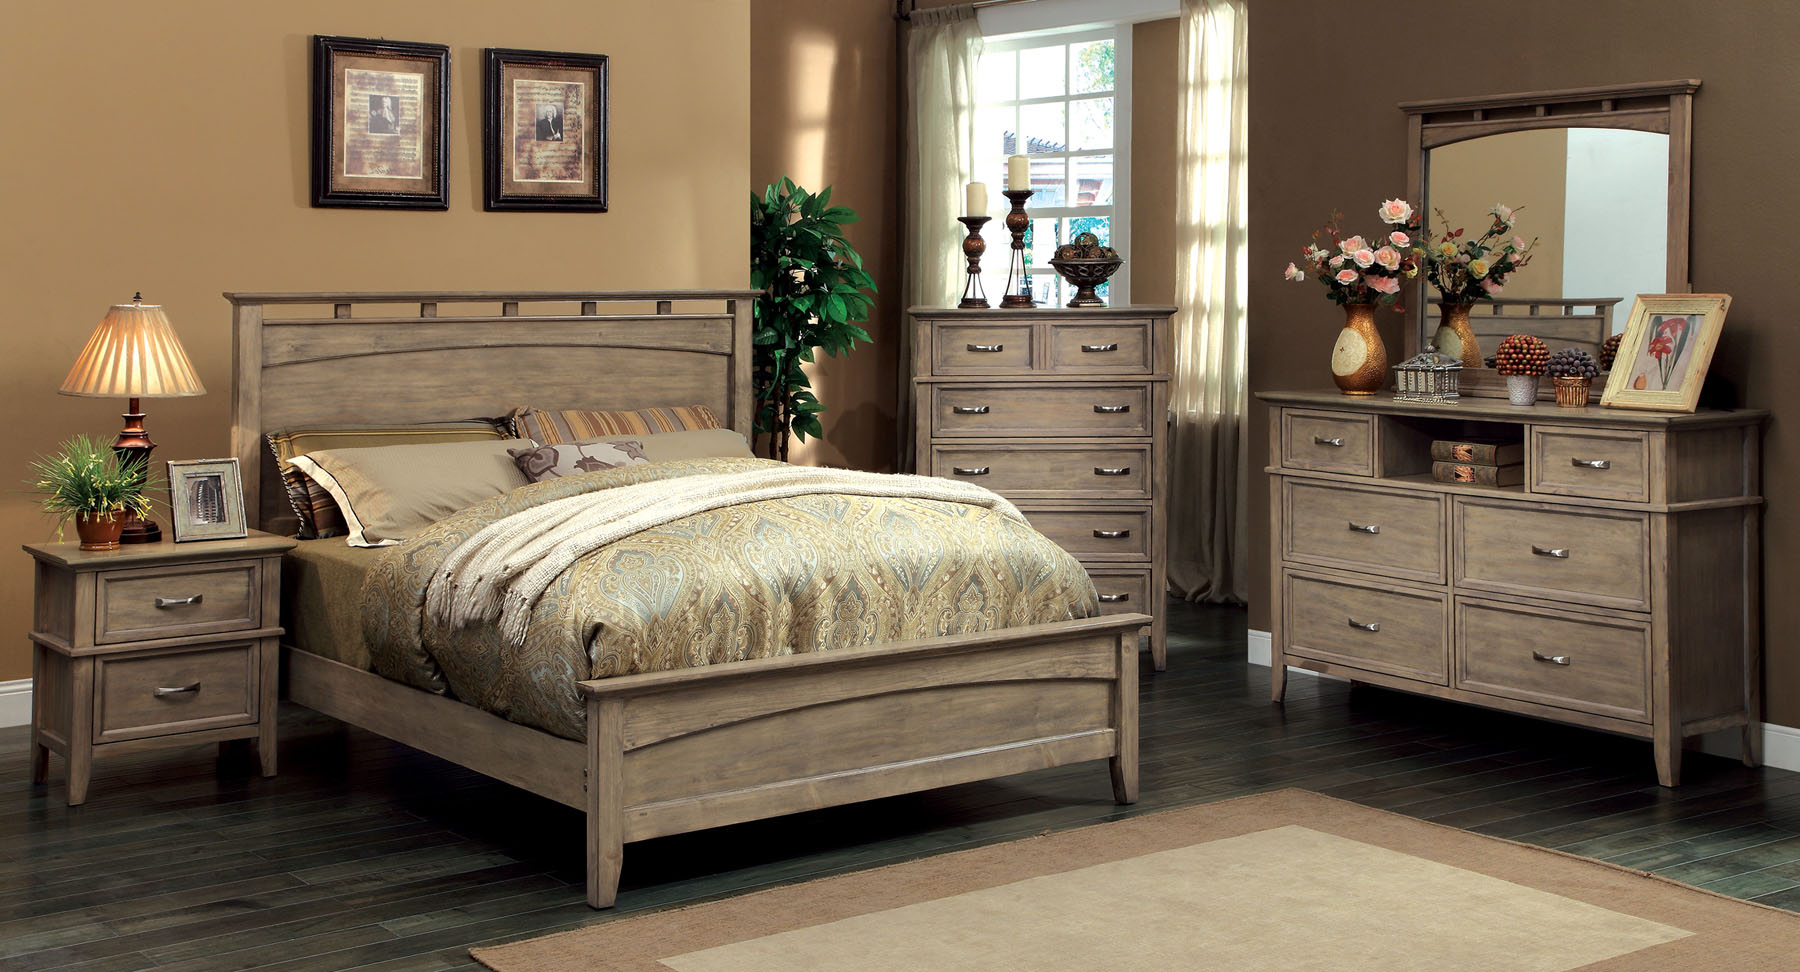 Loxley Cm7351 4pc Bedroom Set Furniture Mattress Los Angeles And